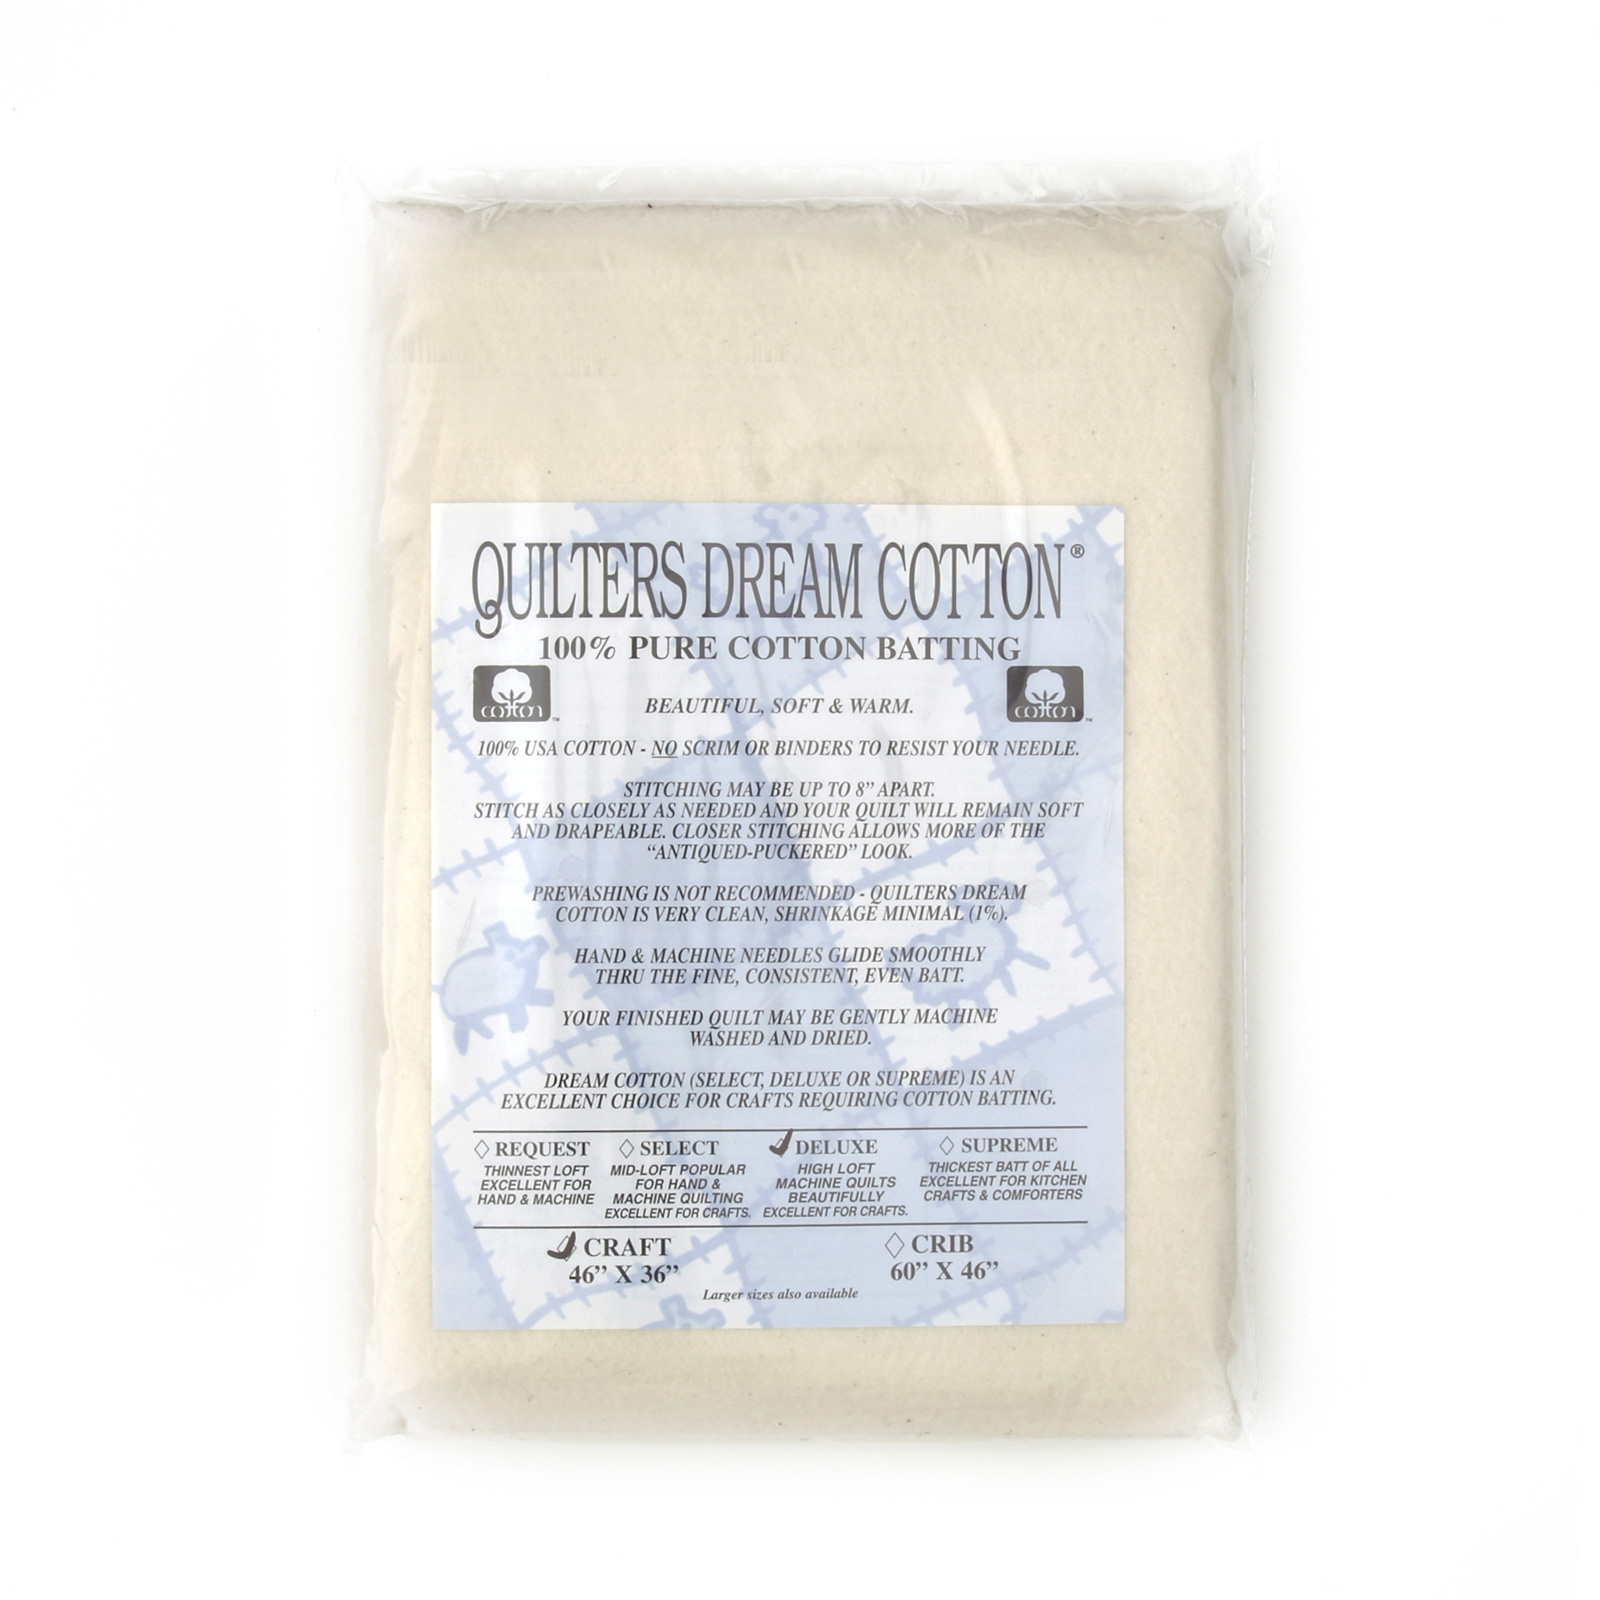 Quilter's Dream Natural Cotton Deluxe Batting (46'' x 36'') Craft by Quilter's Dream in USA